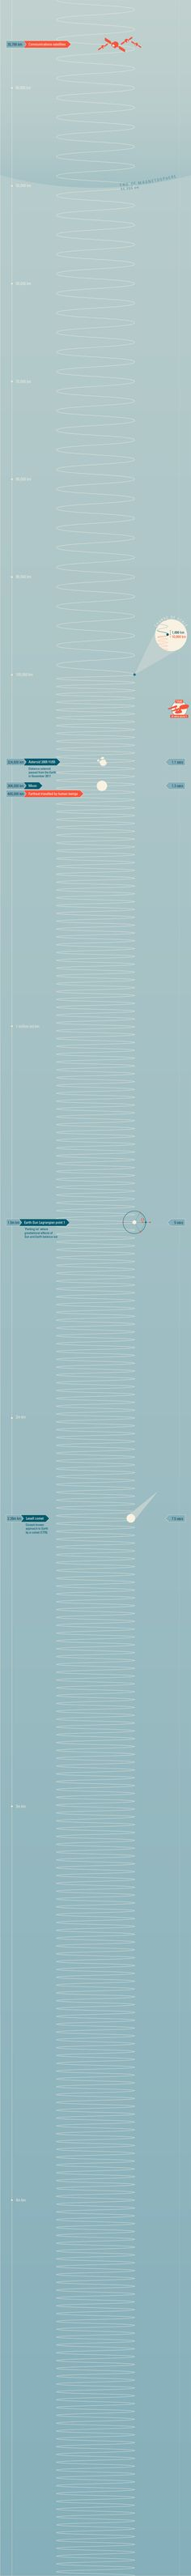 How Big Is Our Solar System is a very...big infographic from the BBC